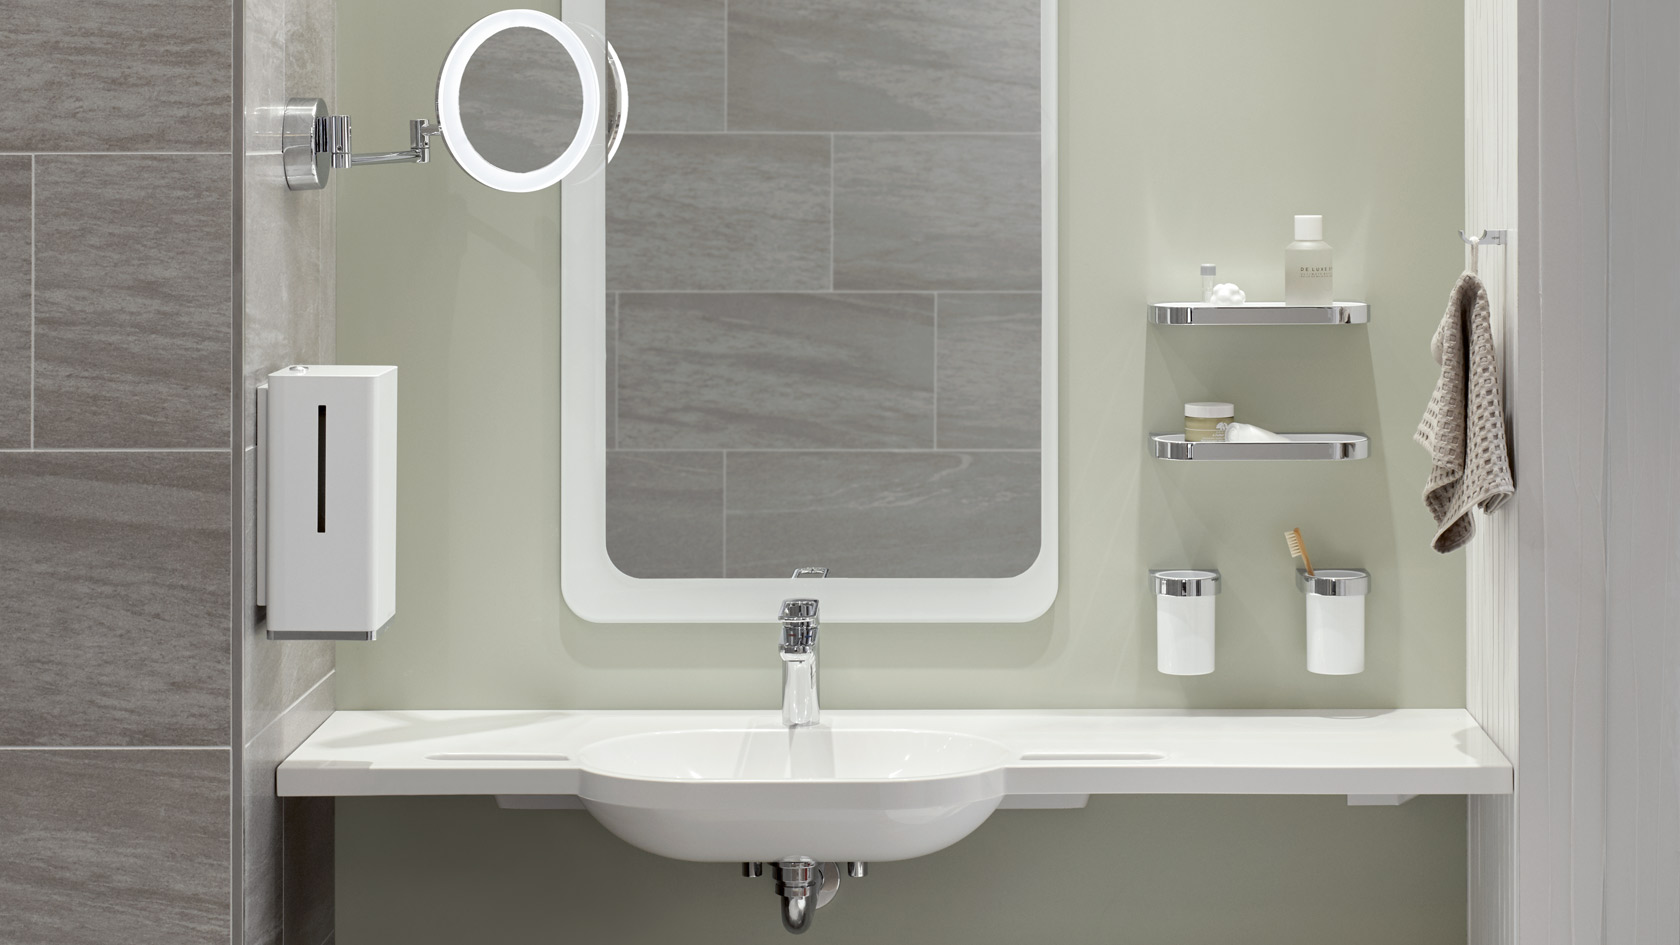 Tailormade Washbasins. More Design Freedom